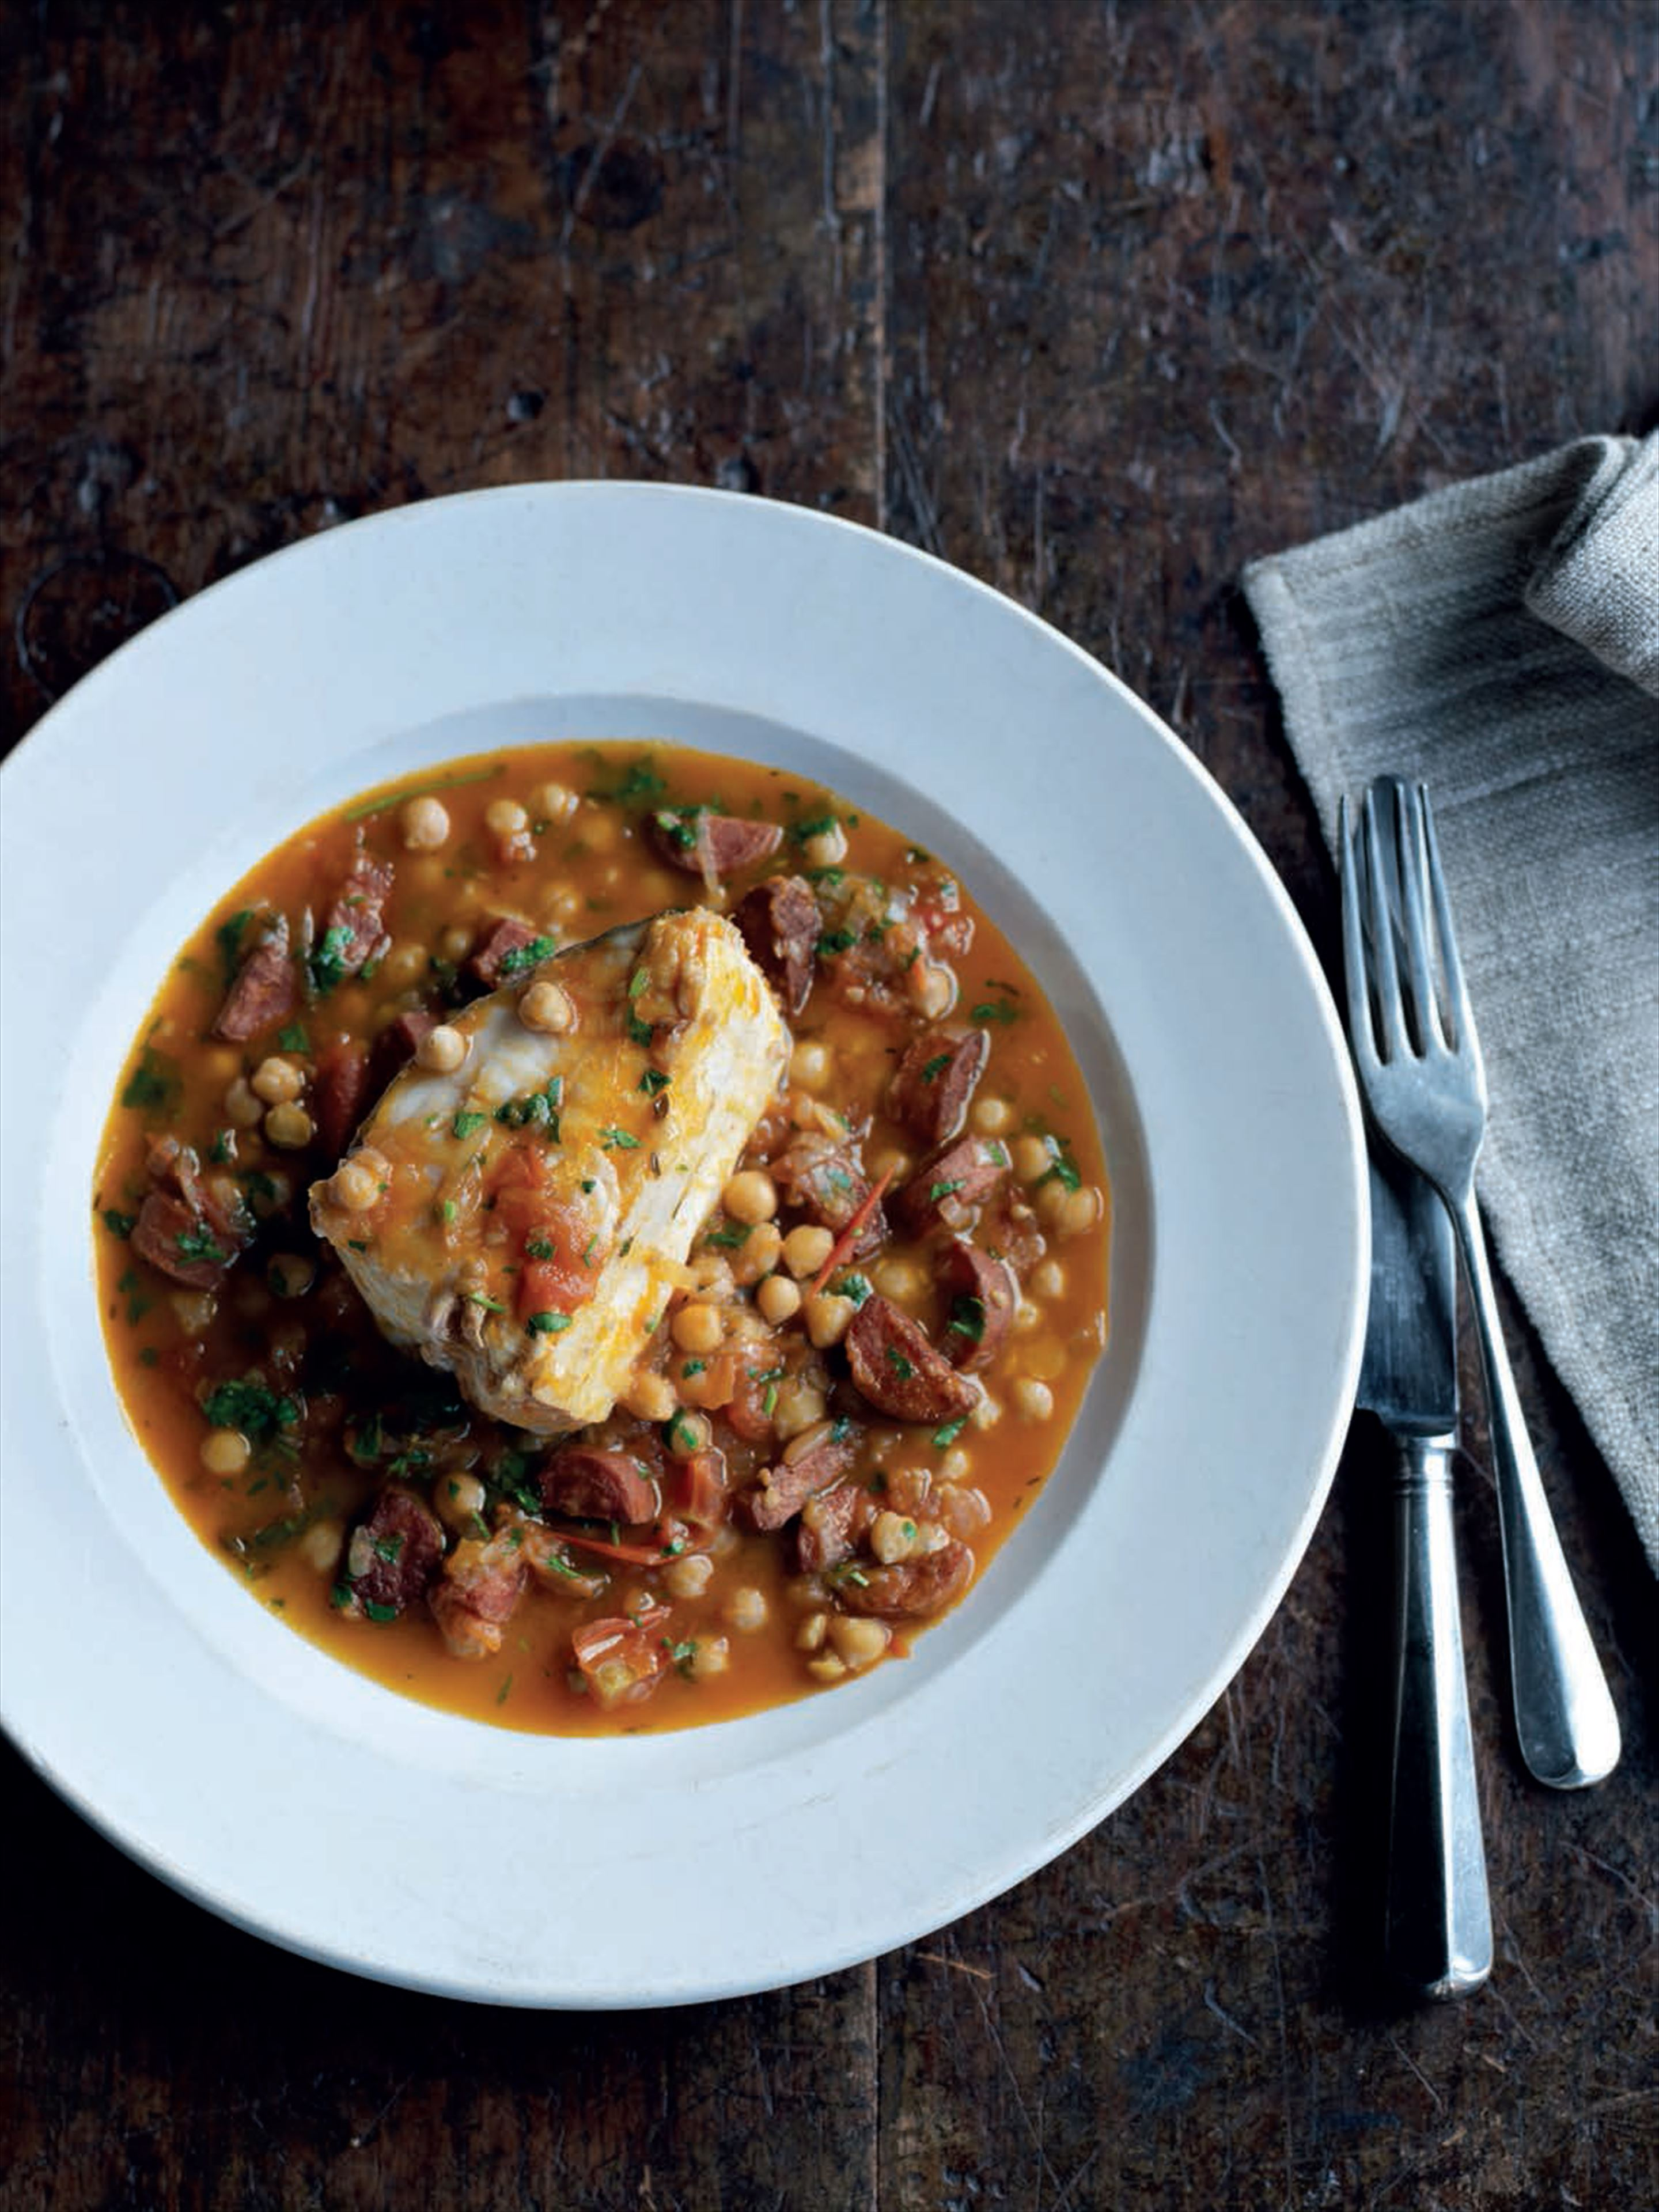 Braised halibut with chickpeas and chorizo